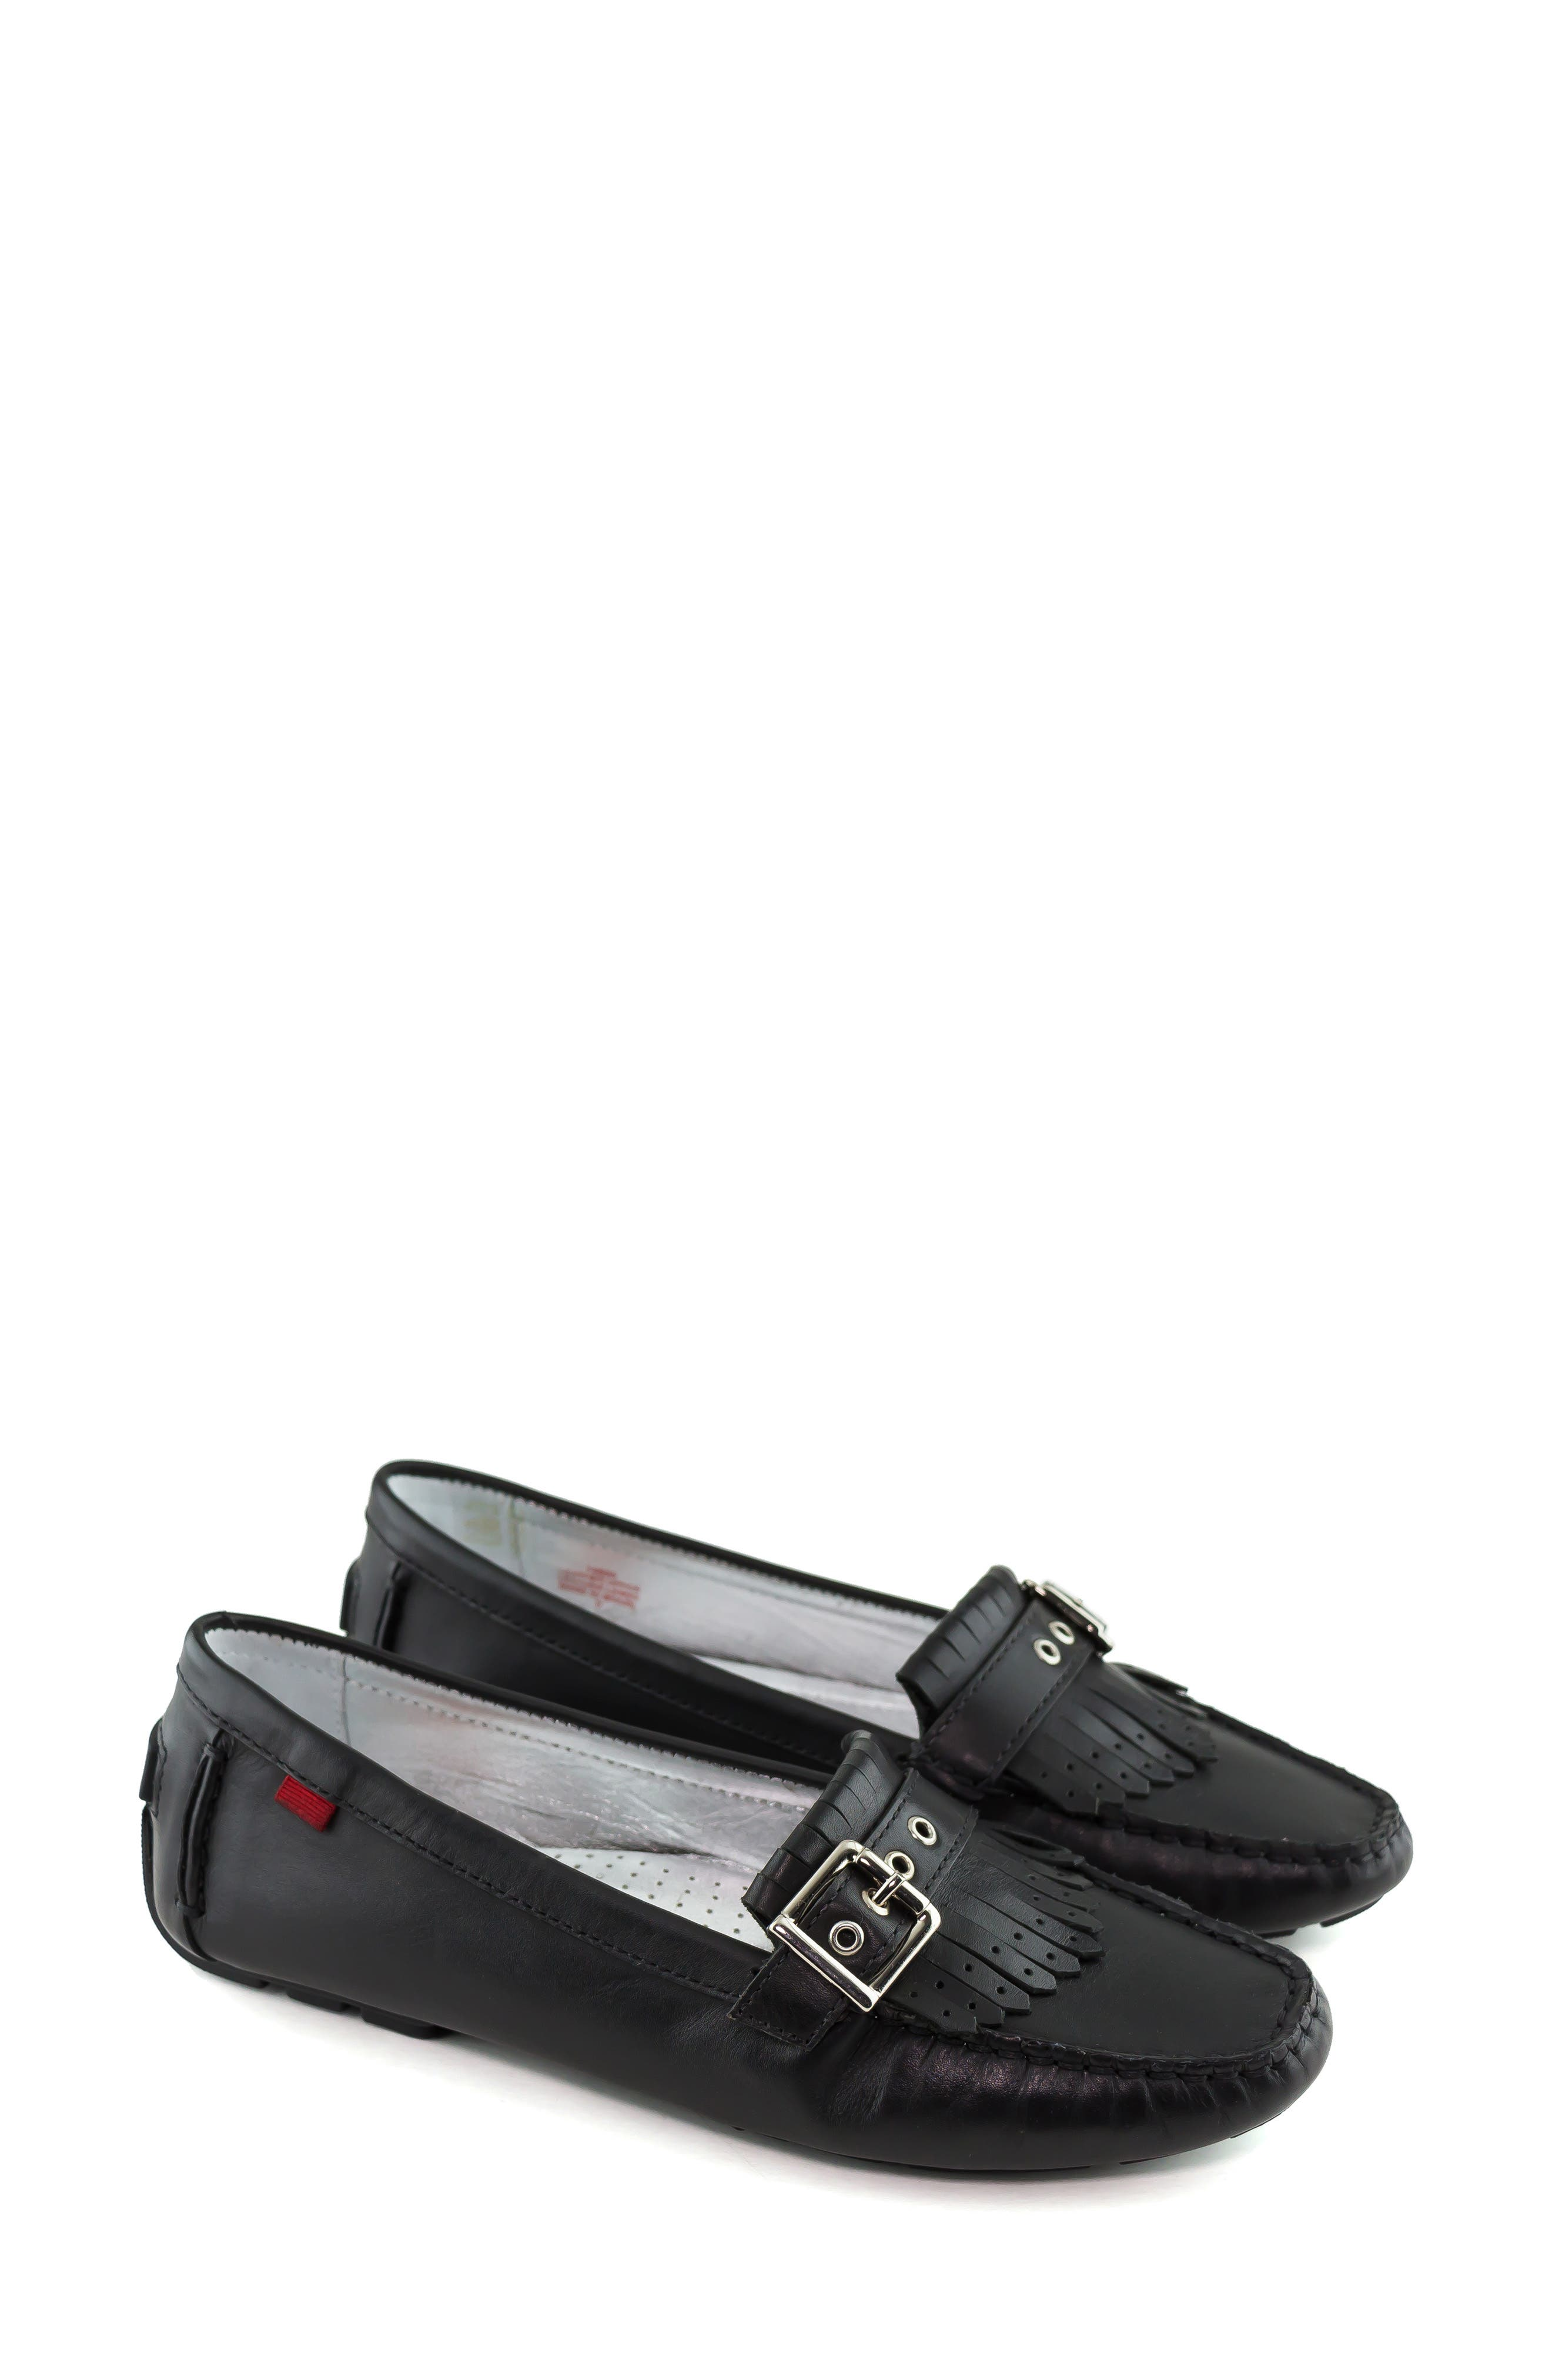 MARC JOSEPH NEW YORK, South Street Loafer, Alternate thumbnail 8, color, BLACK LEATHER